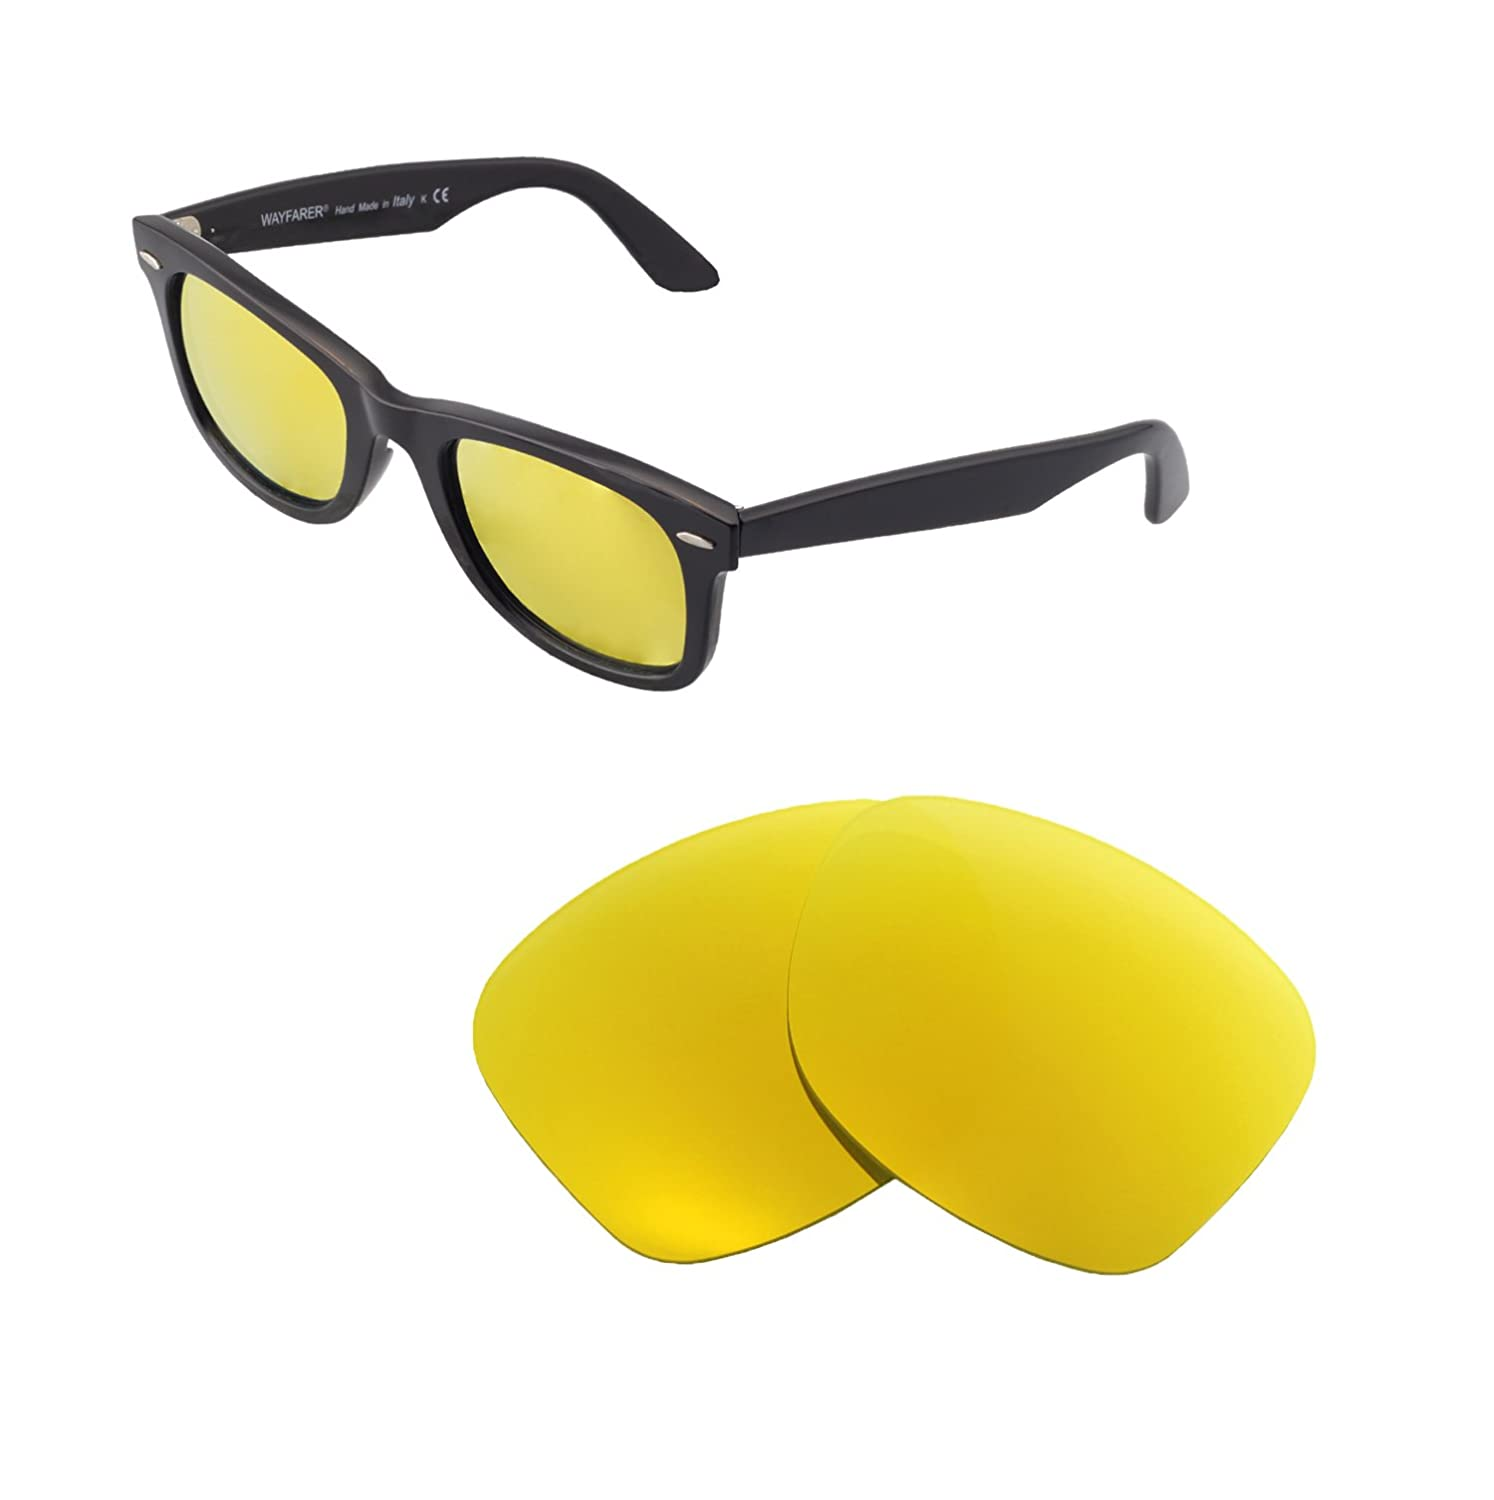 3cb7a415313 Amazon.com  Walleva Replacement Lenses for Ray-Ban Wayfarer RB2140 50mm- 5  Options (24K Gold - Polarized)  Clothing